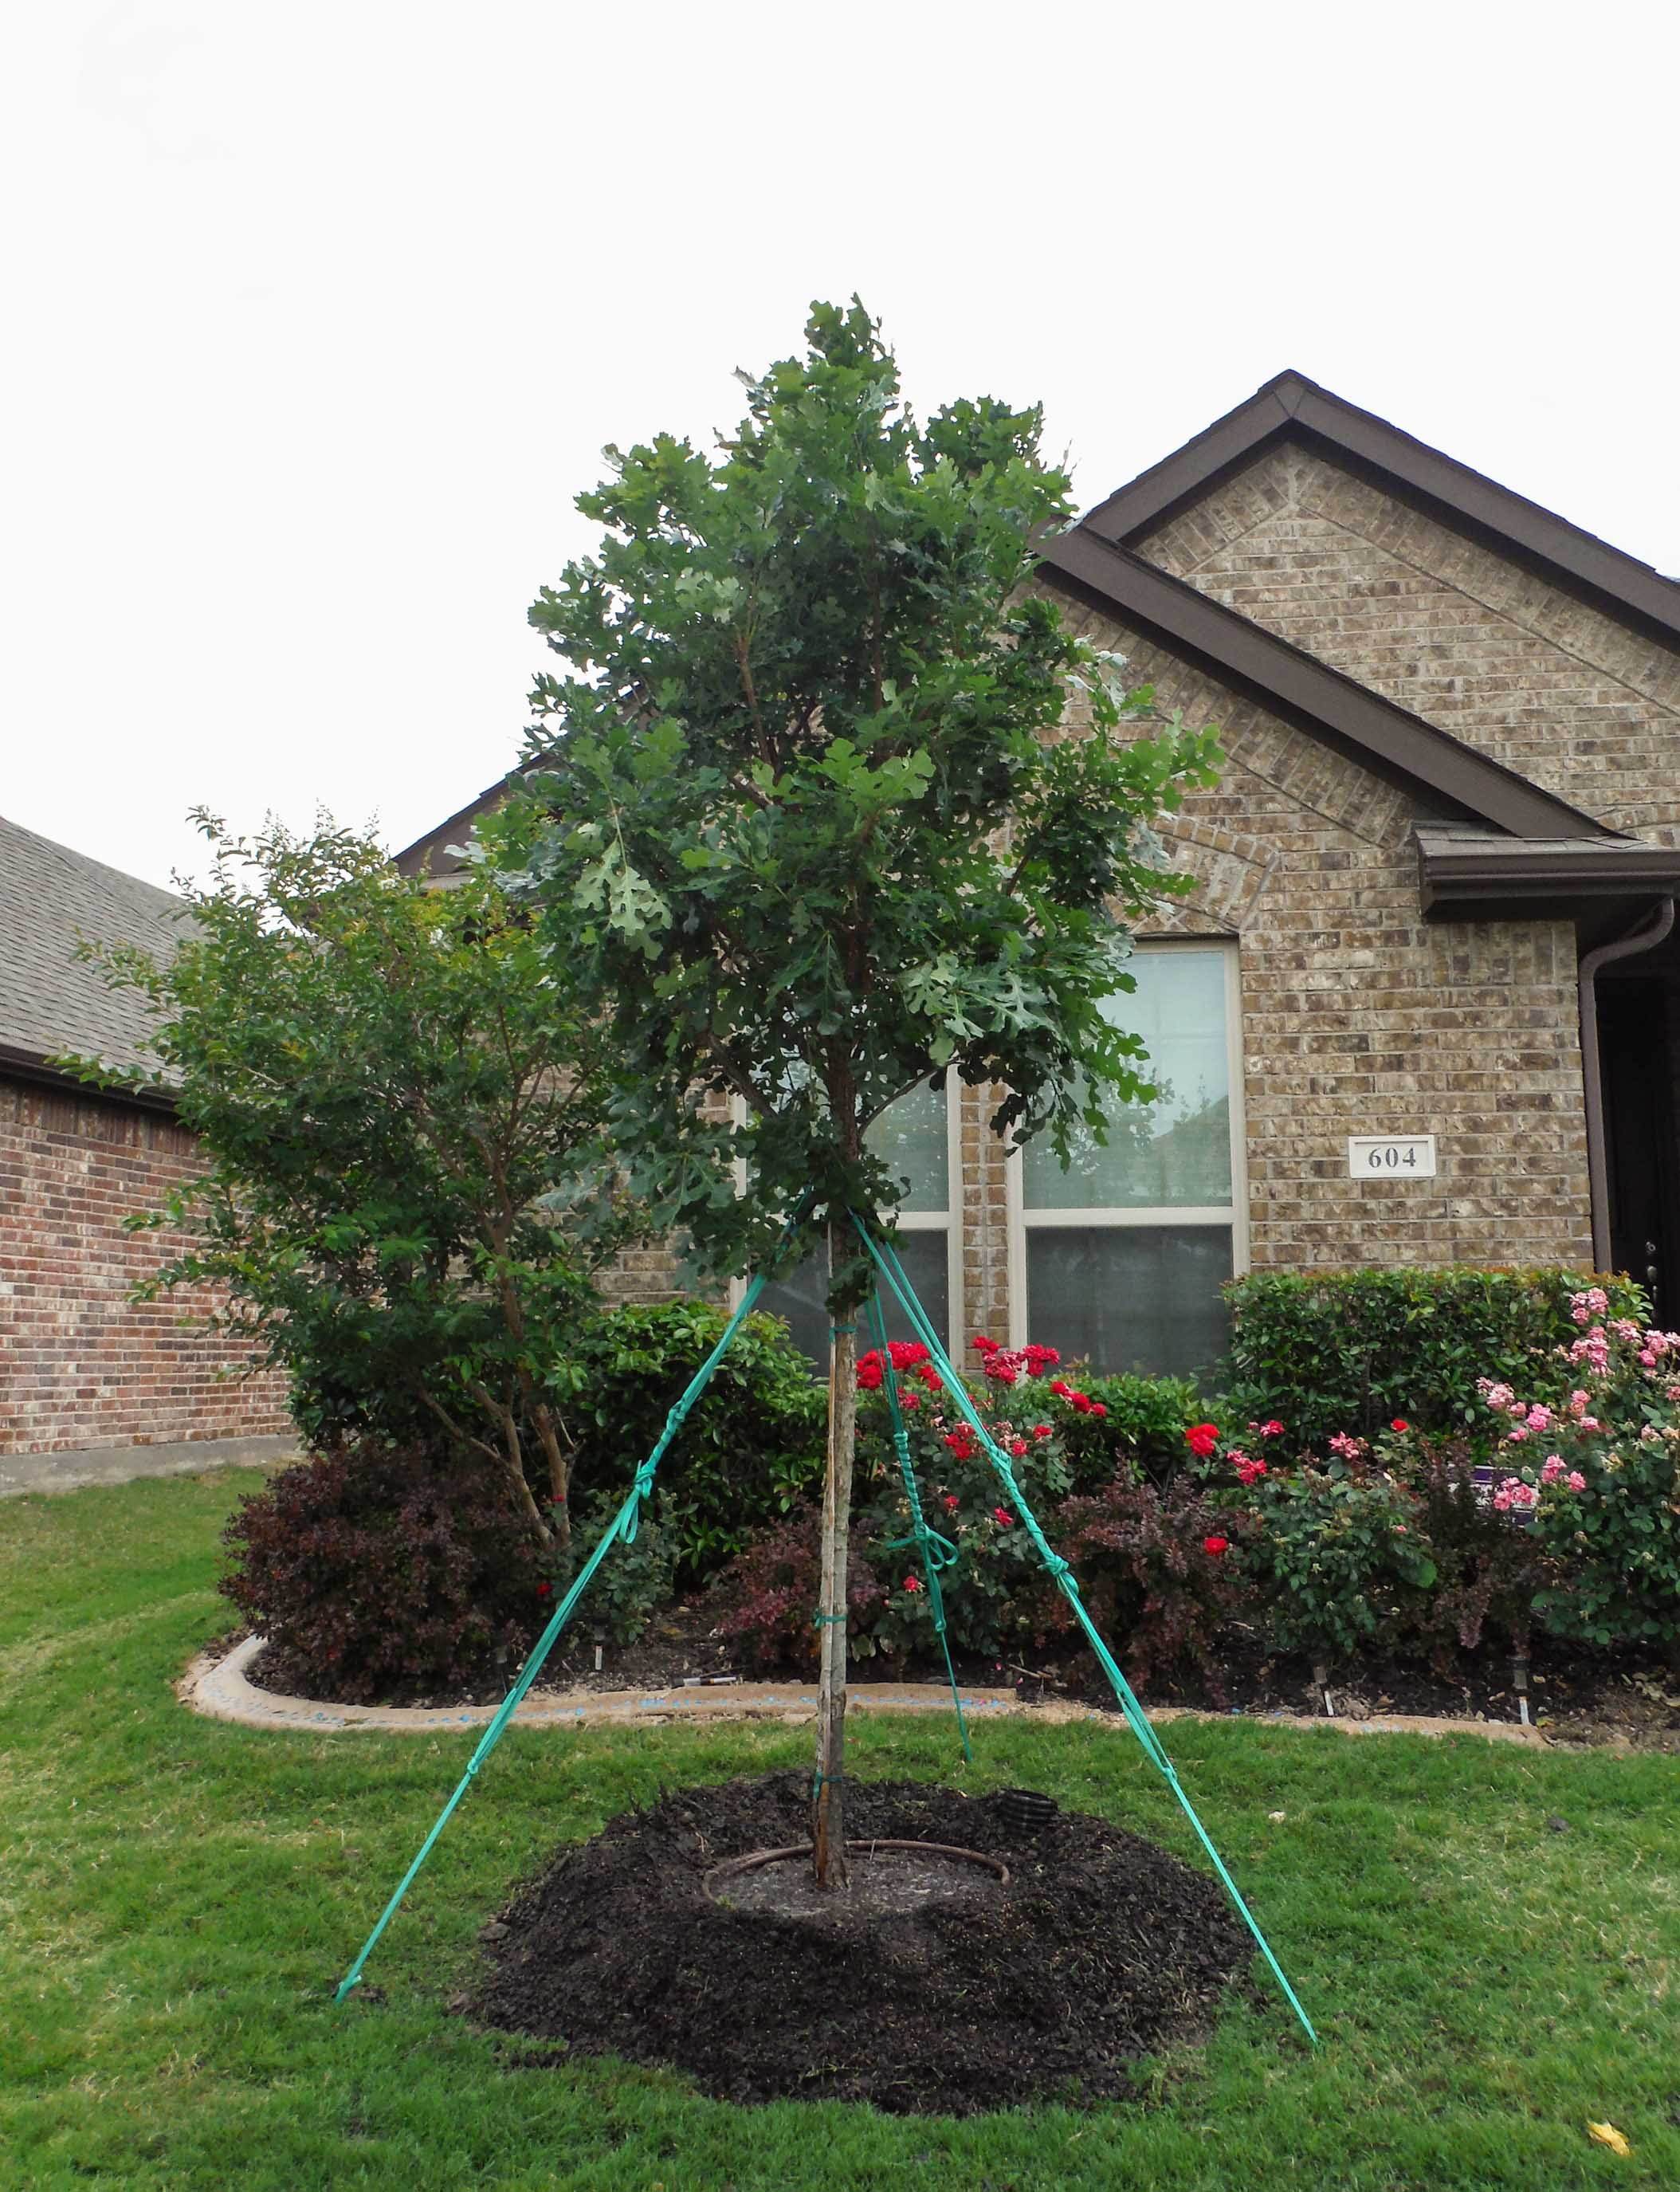 Bur Oak tree installed in a frontyard by Treeland Nursery.